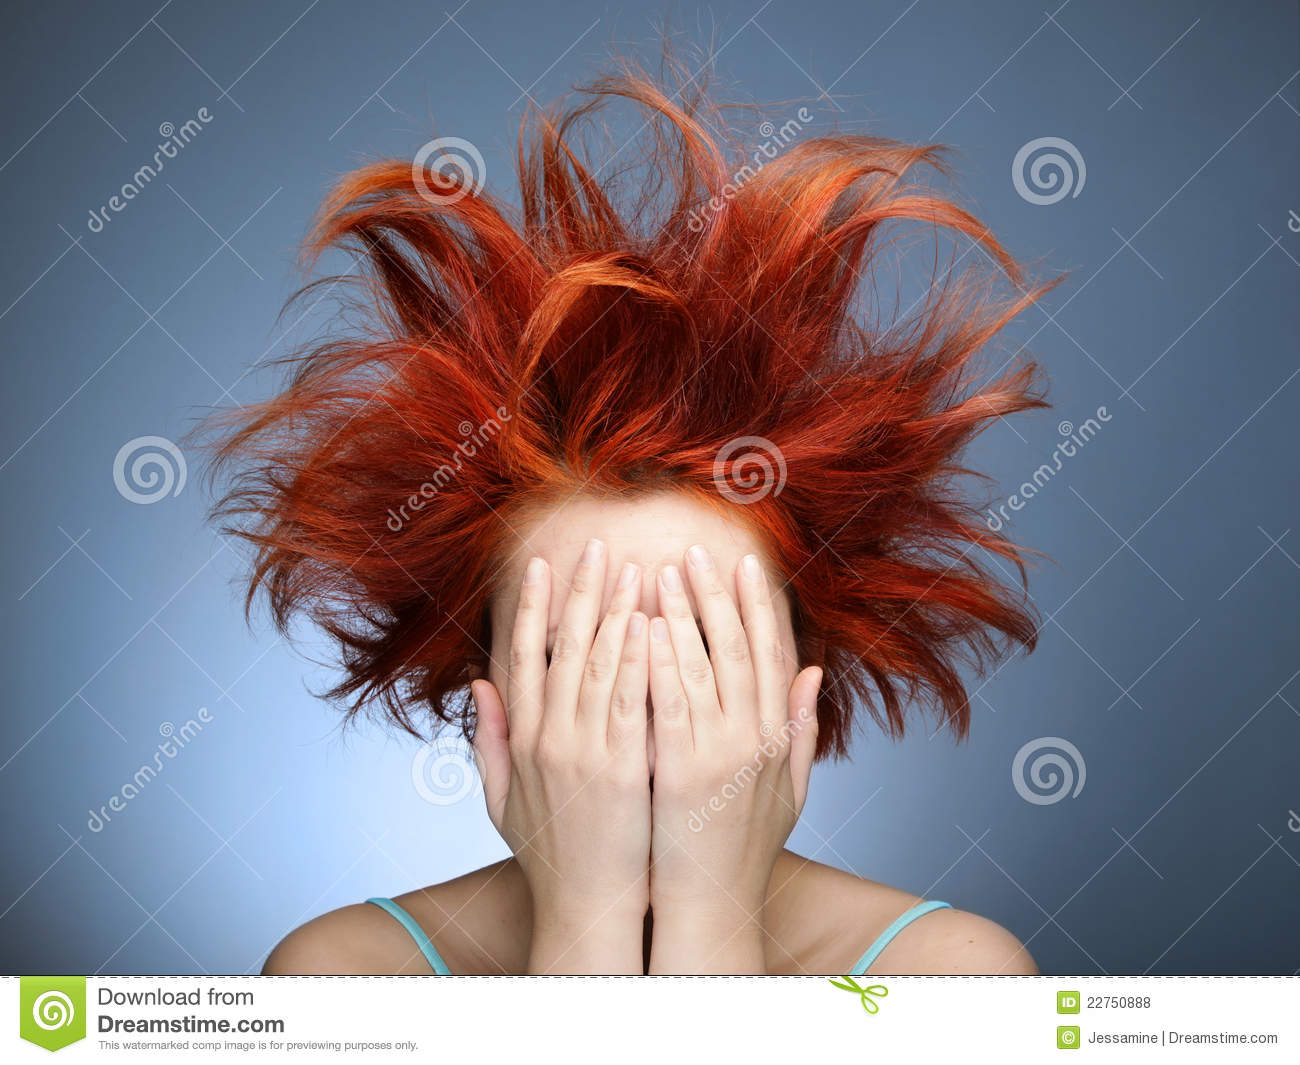 Bad Hair Day Stock Photo Image Of Expression Cover 22750888